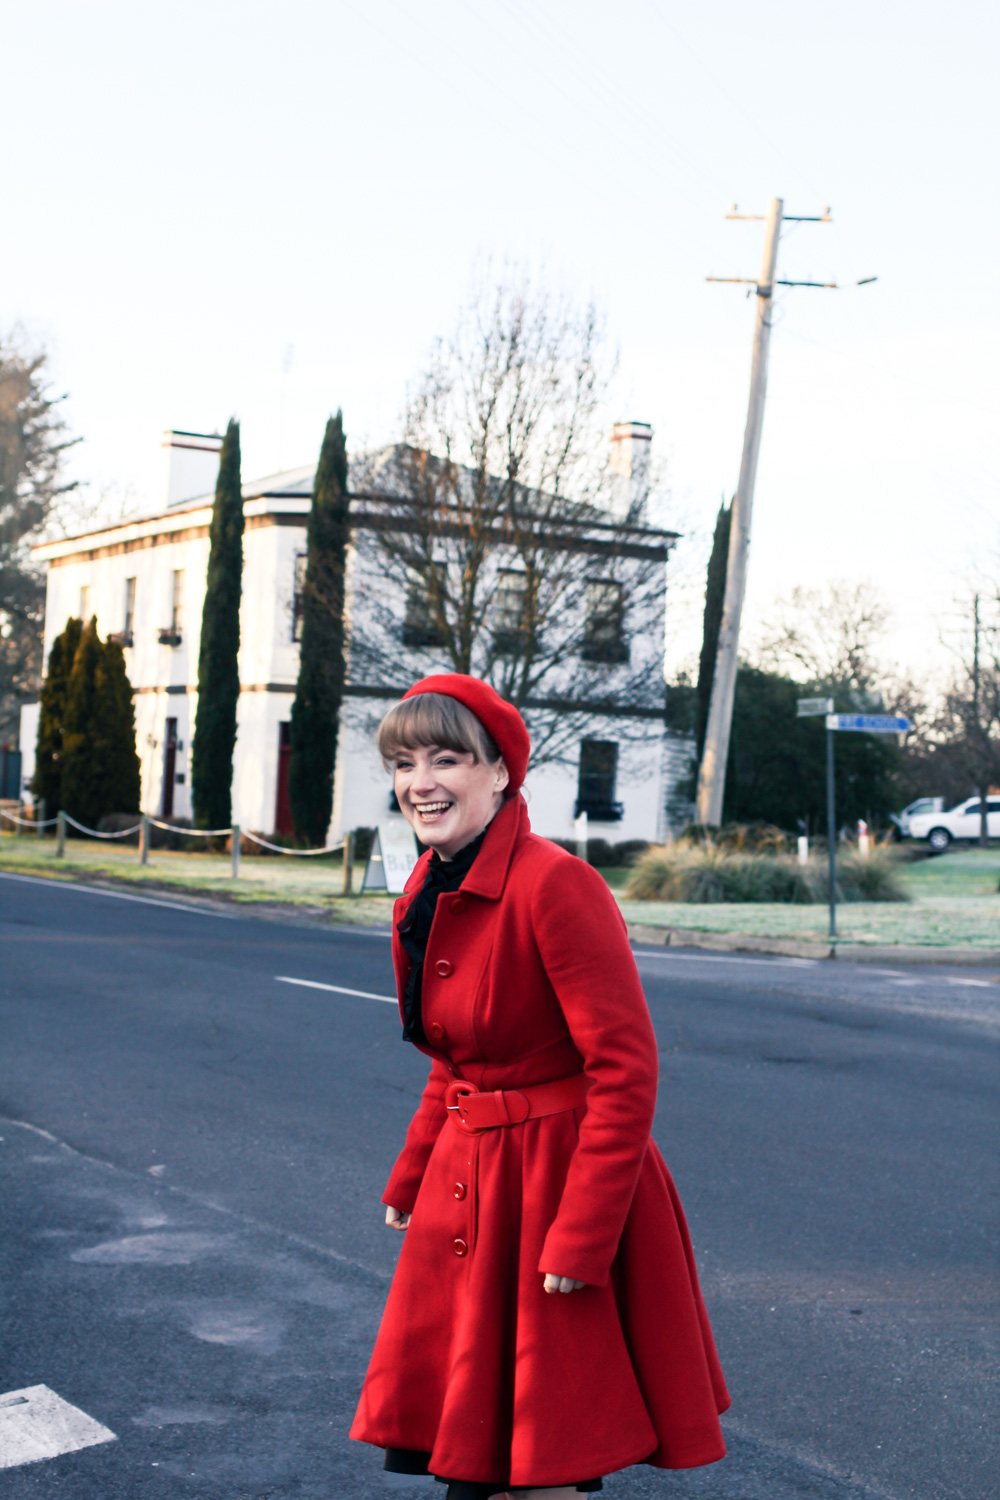 Liana of @findingfemme in a red review australia winter coat at Keebles Country House in Clunes, Victoria